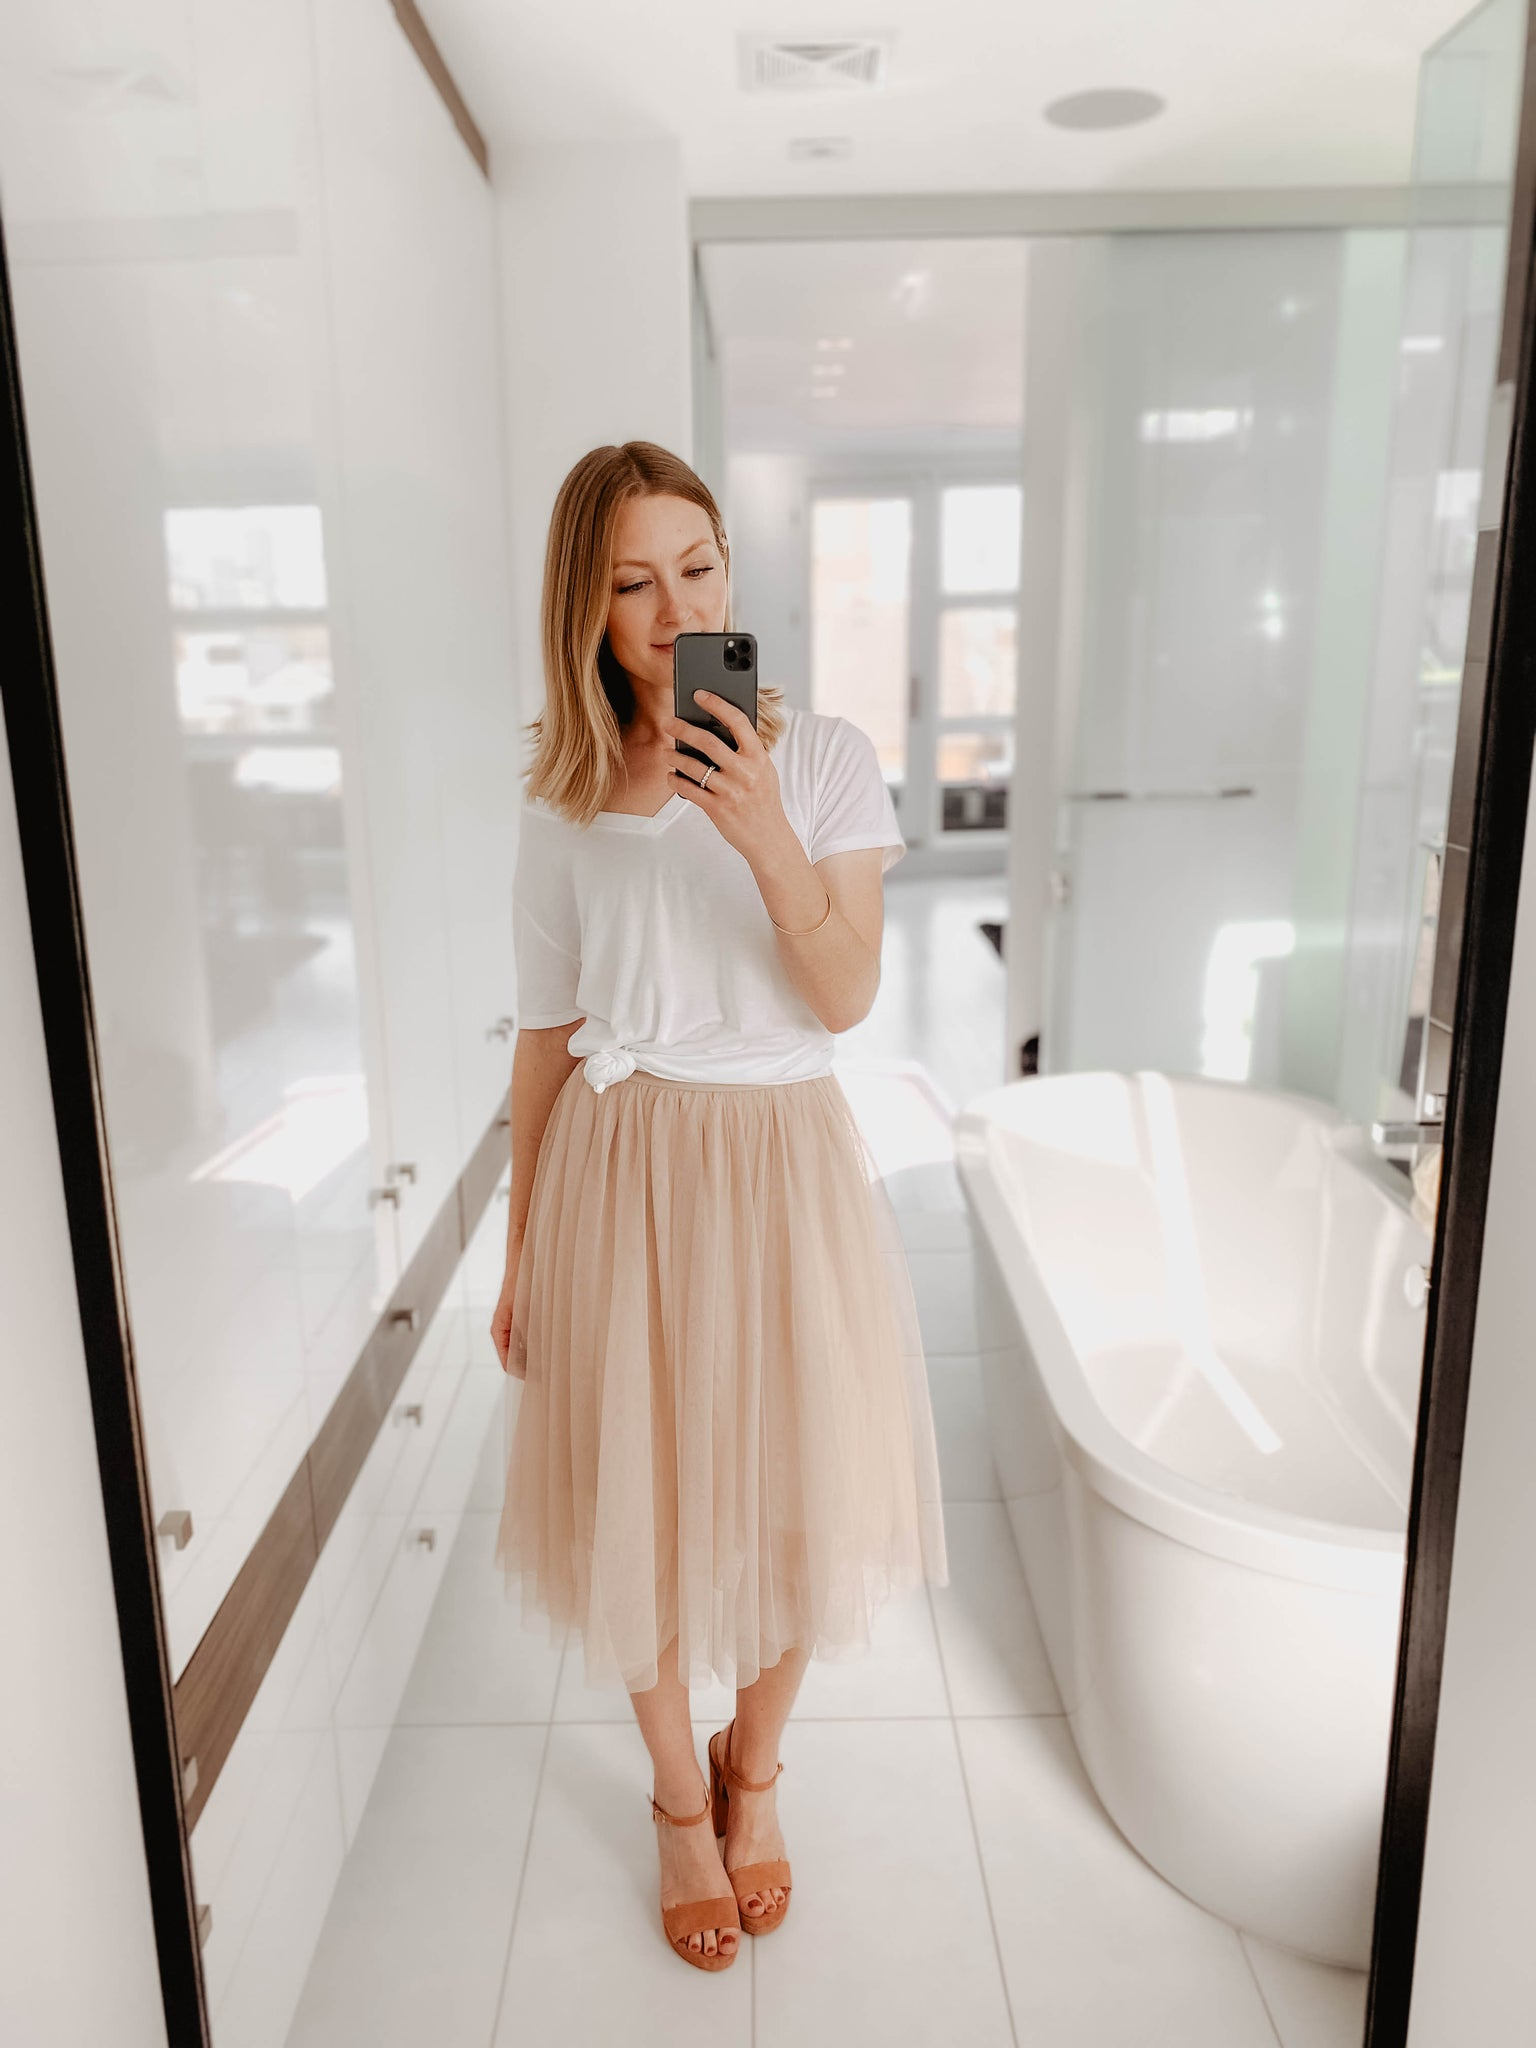 White T-Shirts With Skirts